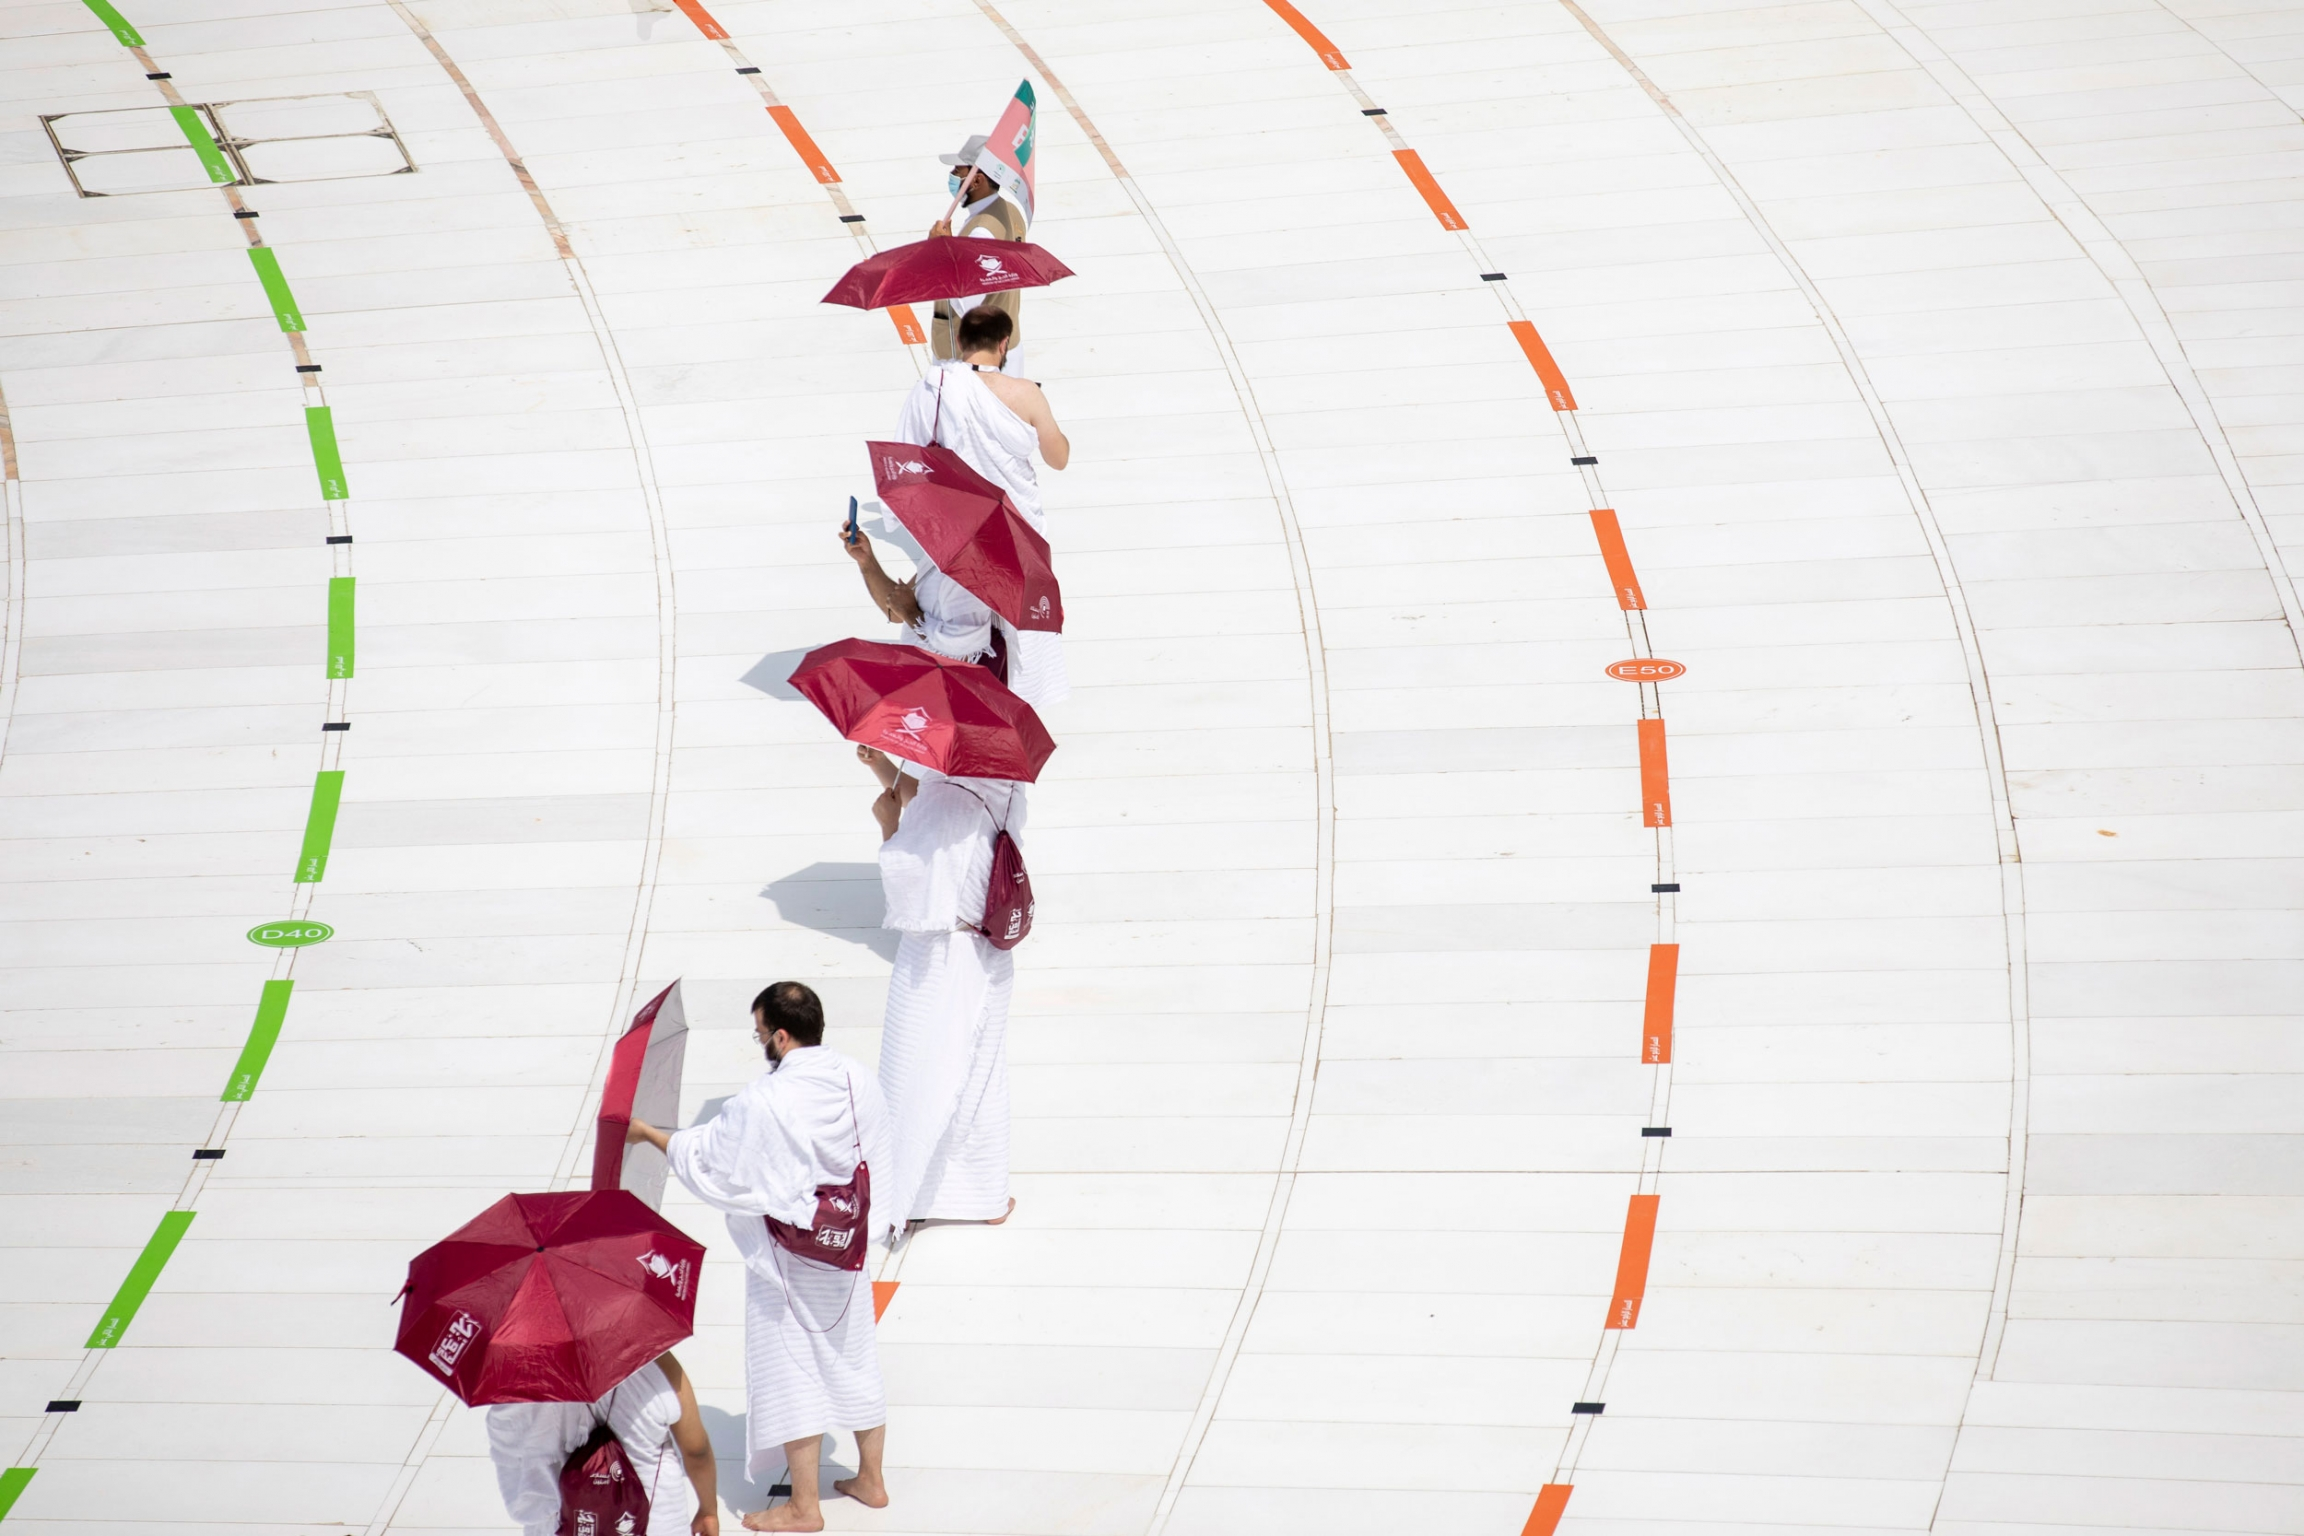 A line of people are shown wearing white robes and carrying red umbrellas.